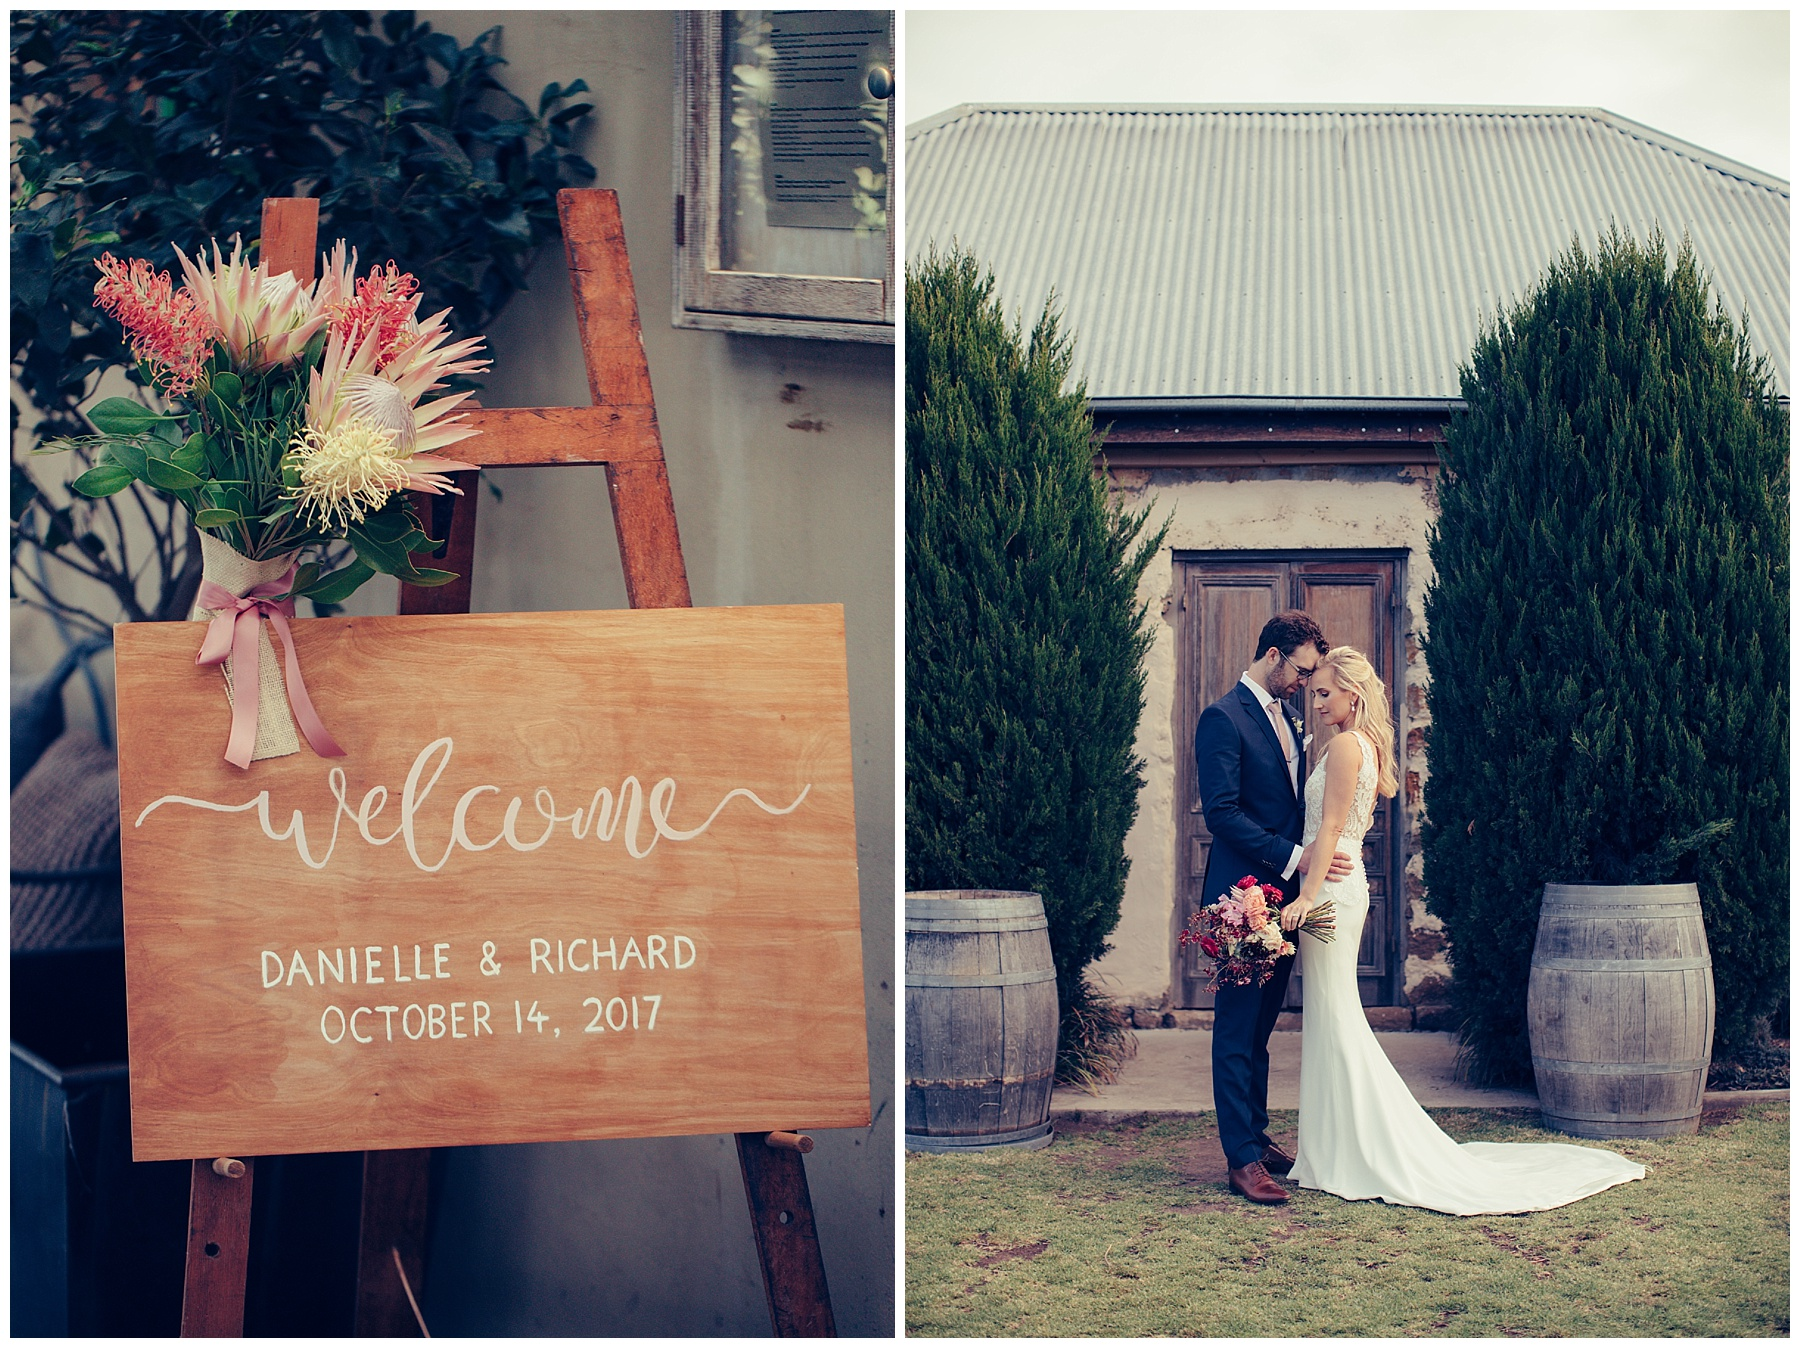 DIY wedding board and bride and groom at Cupitts Winery